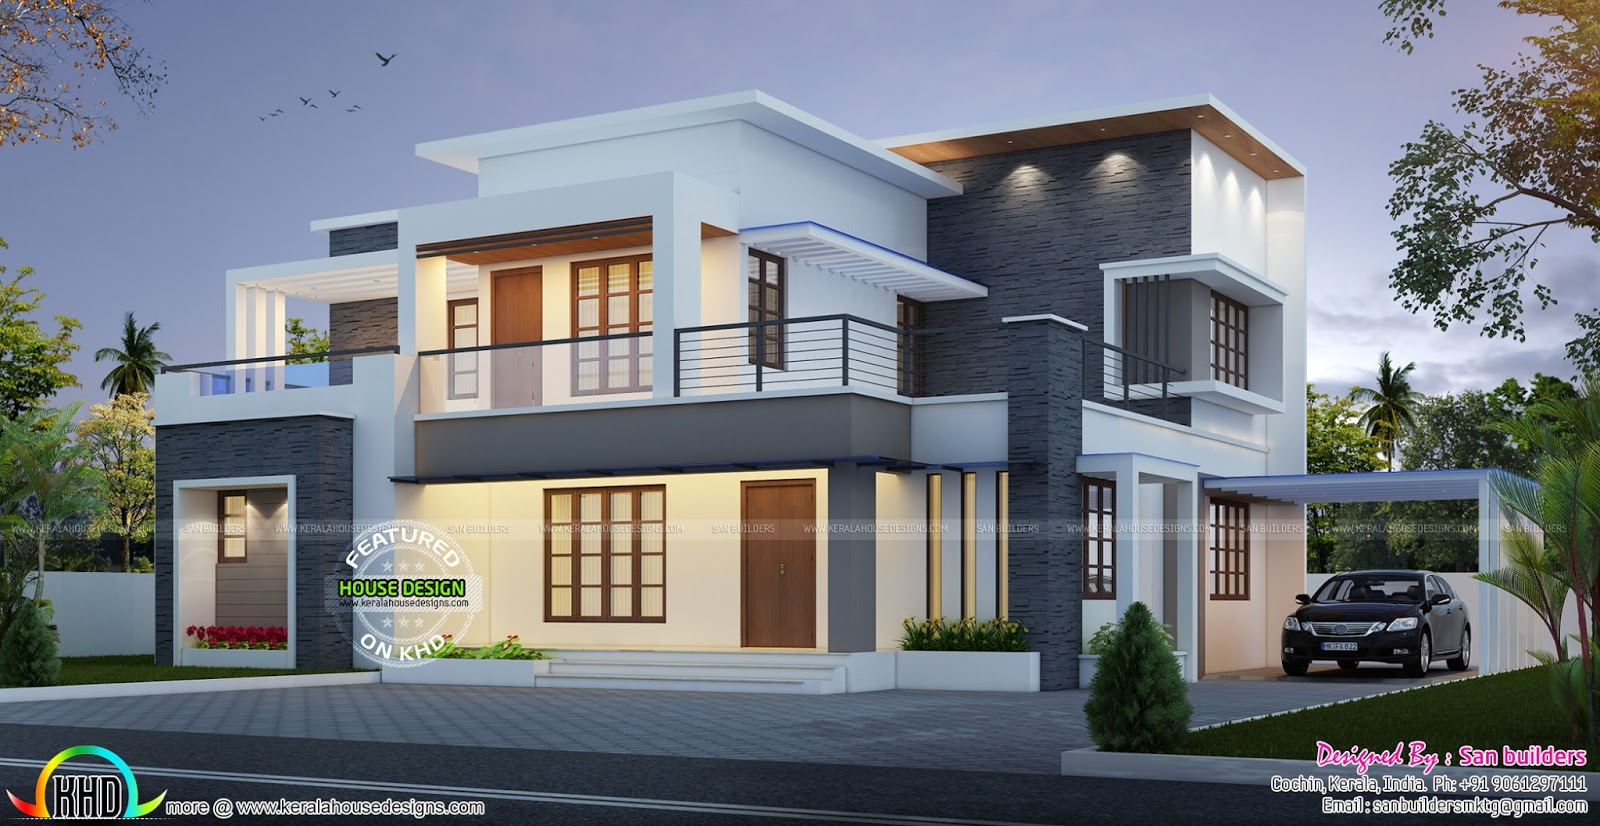 House plan and elevation by san builders kerala home for House designer plan